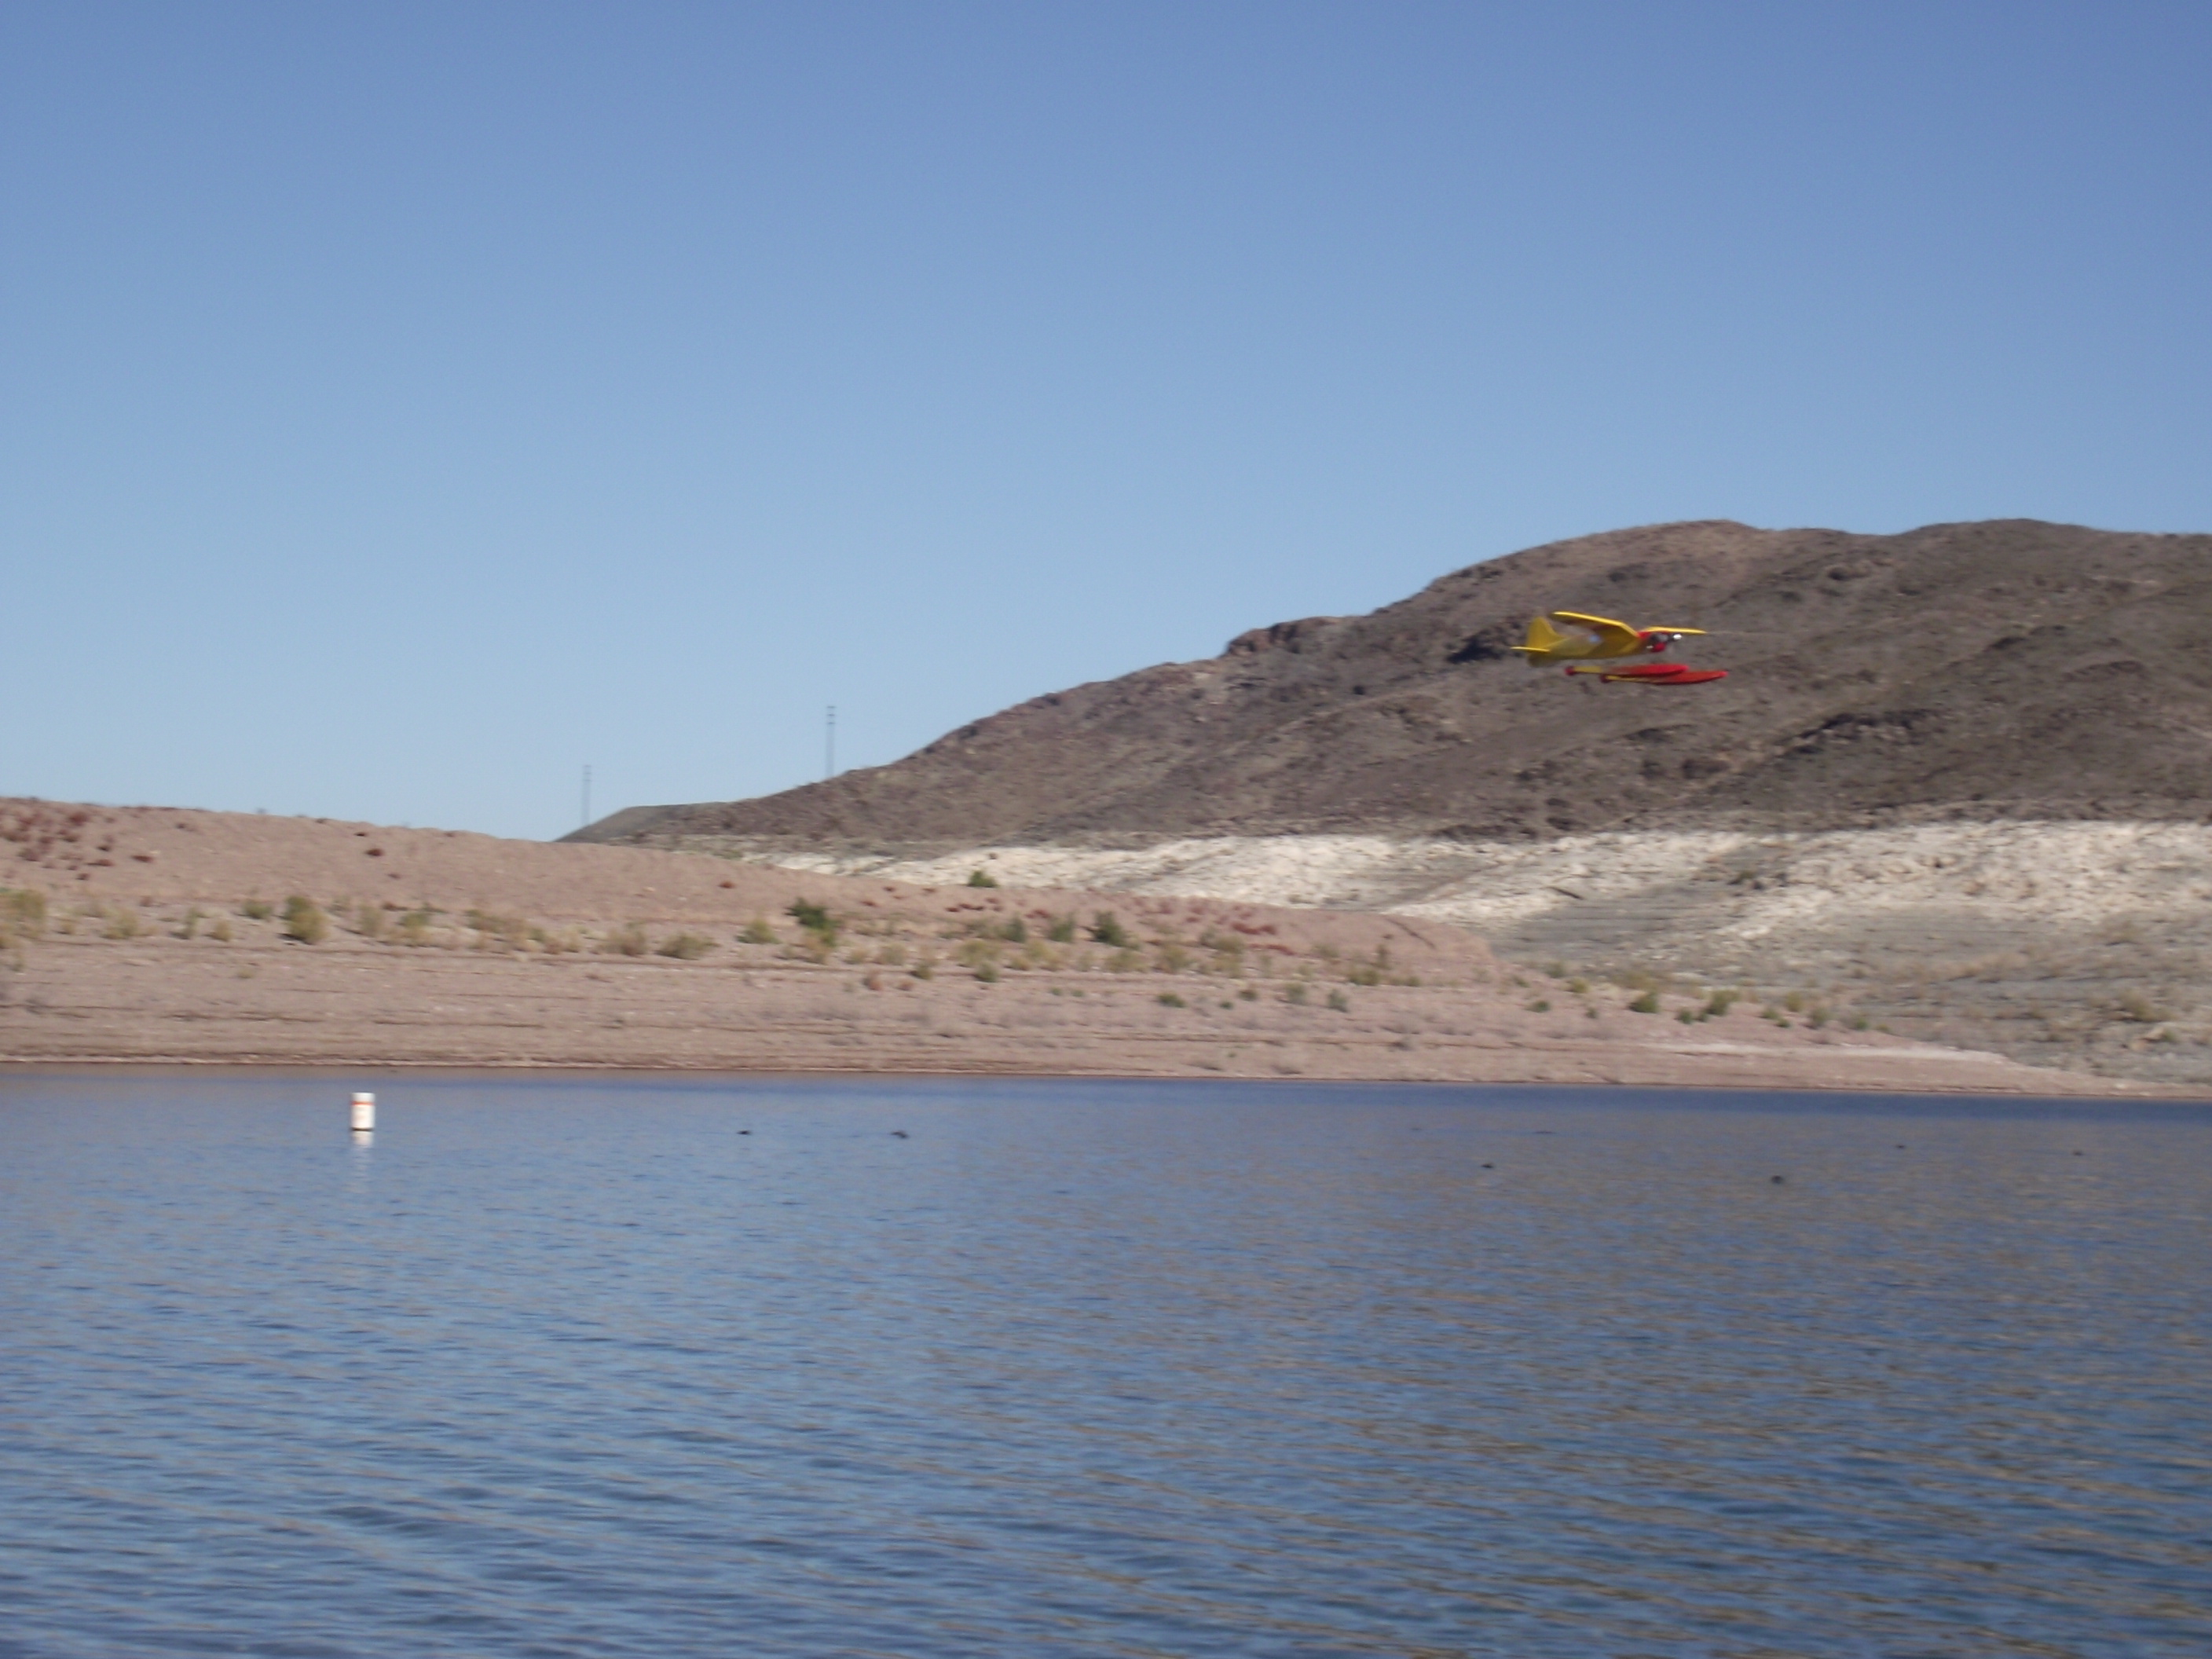 Click image for larger version  Name:2013_1109lakeMead0002.JPG Views:106 Size:1.35 MB ID:1942351